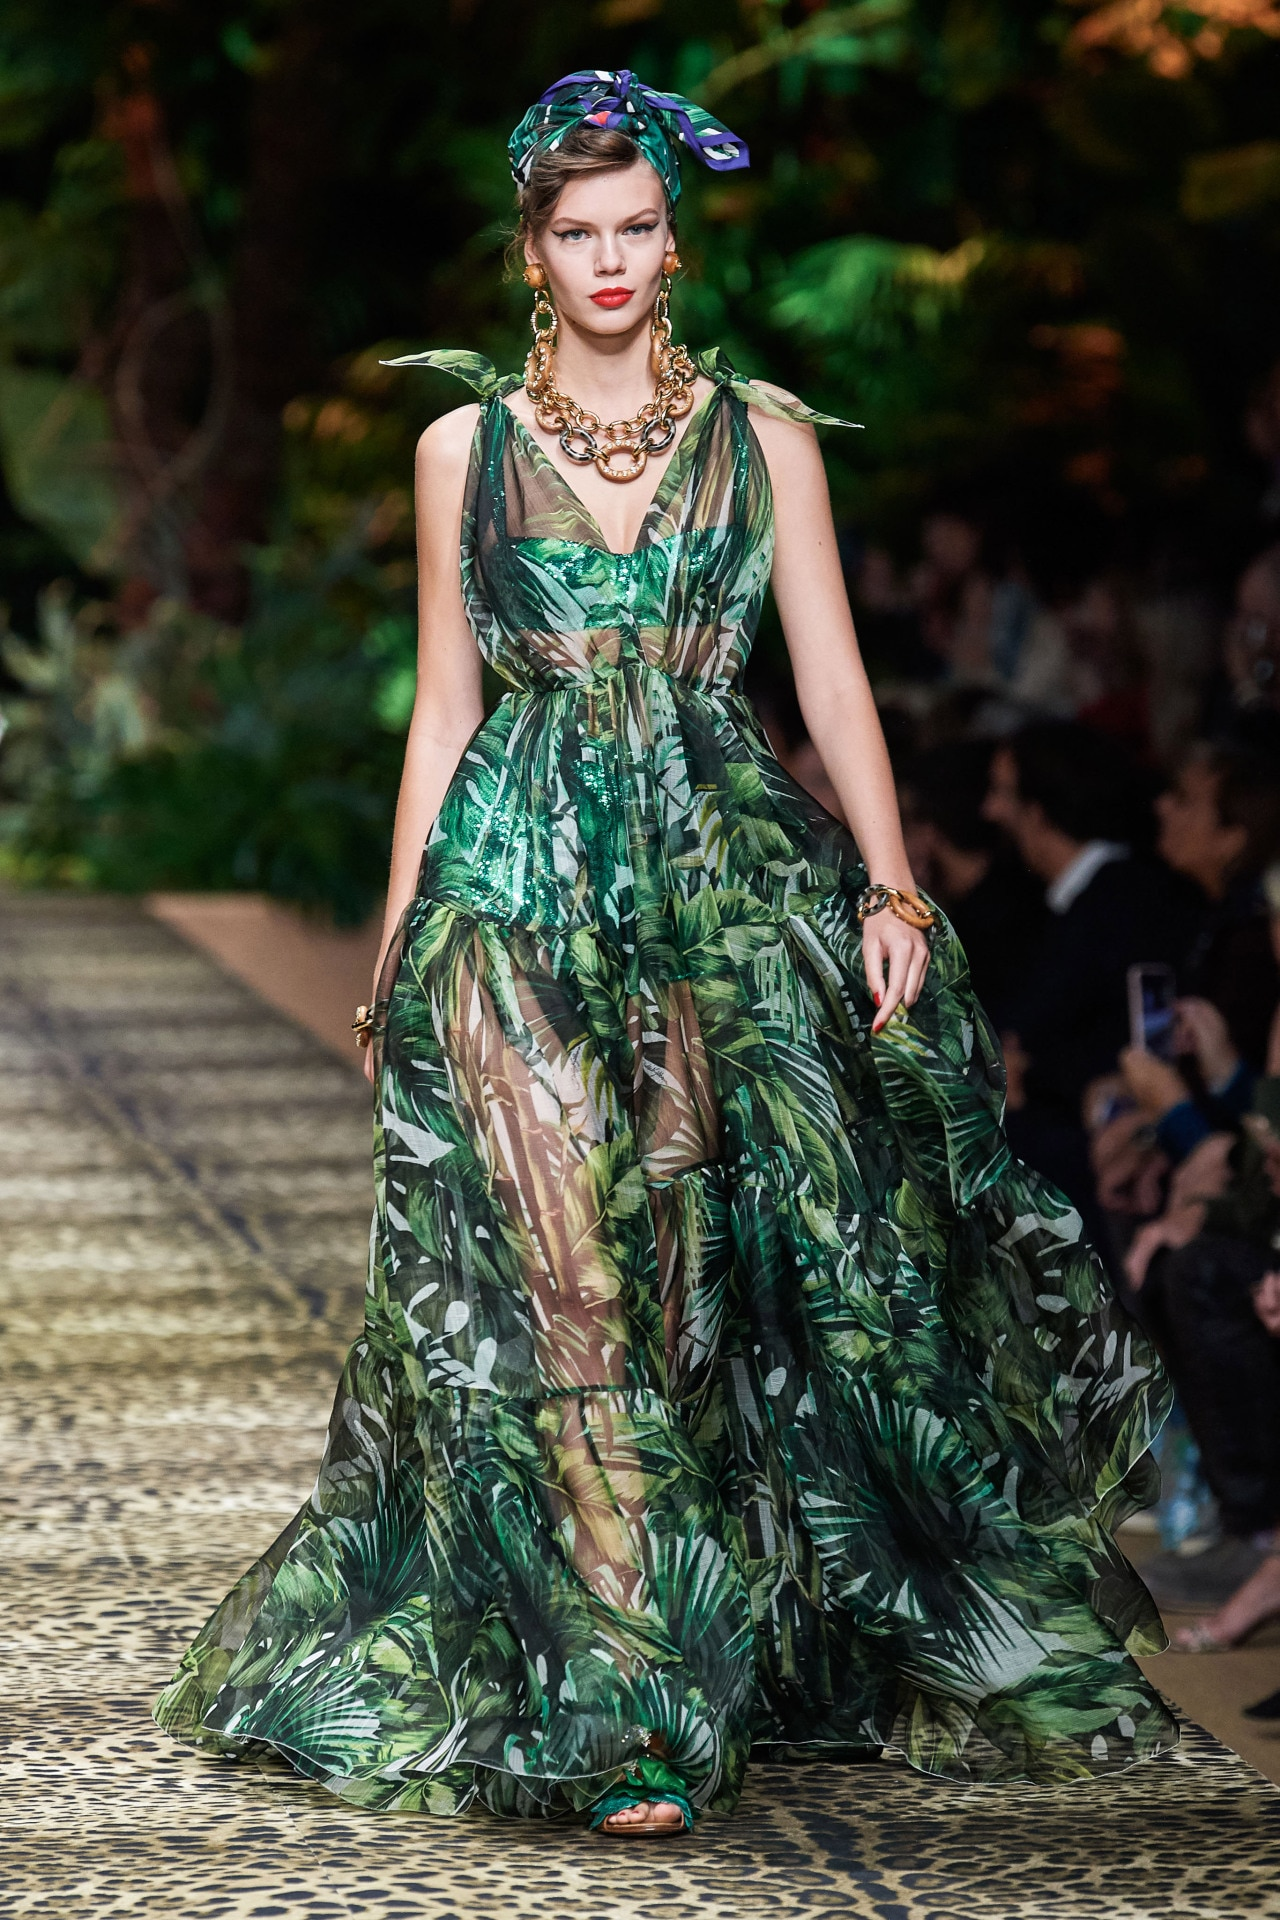 Dolce and Gabbana ready-to-wear spring/summer 2020. Image credit: Go.Runway.com